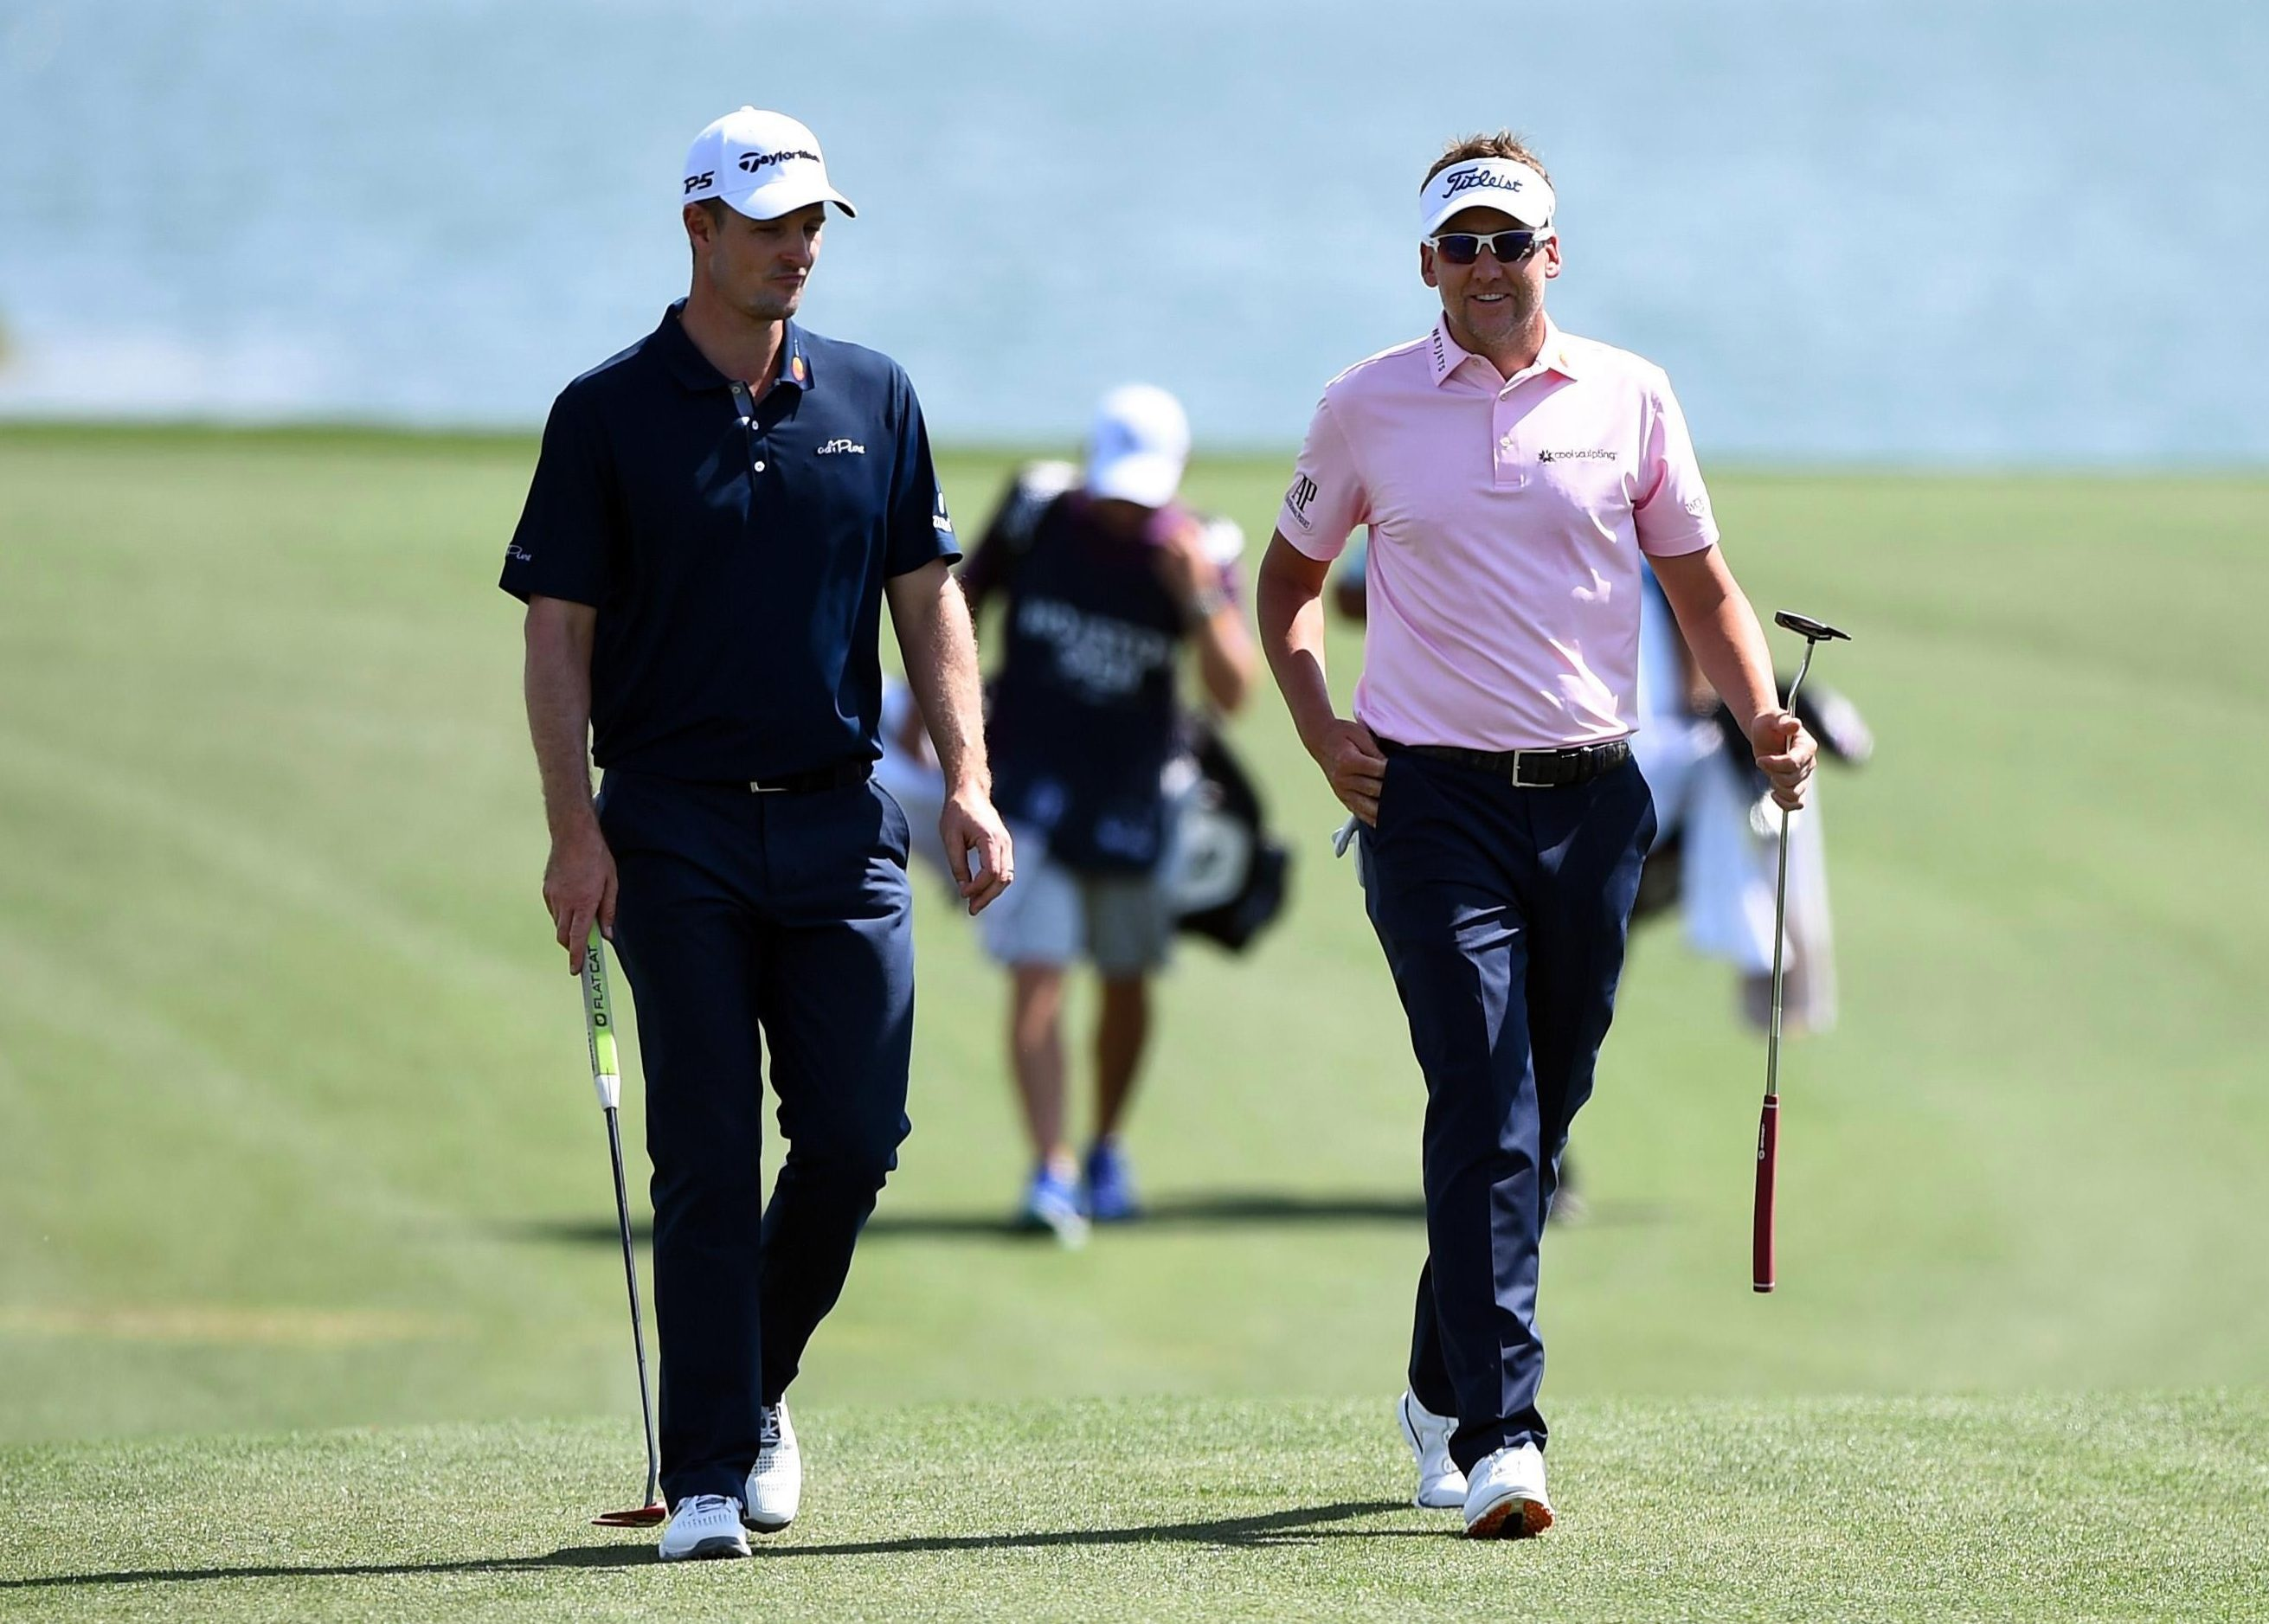 Justin Rose and Ian Poulter have played together i9n practice as they look for their first Masters title